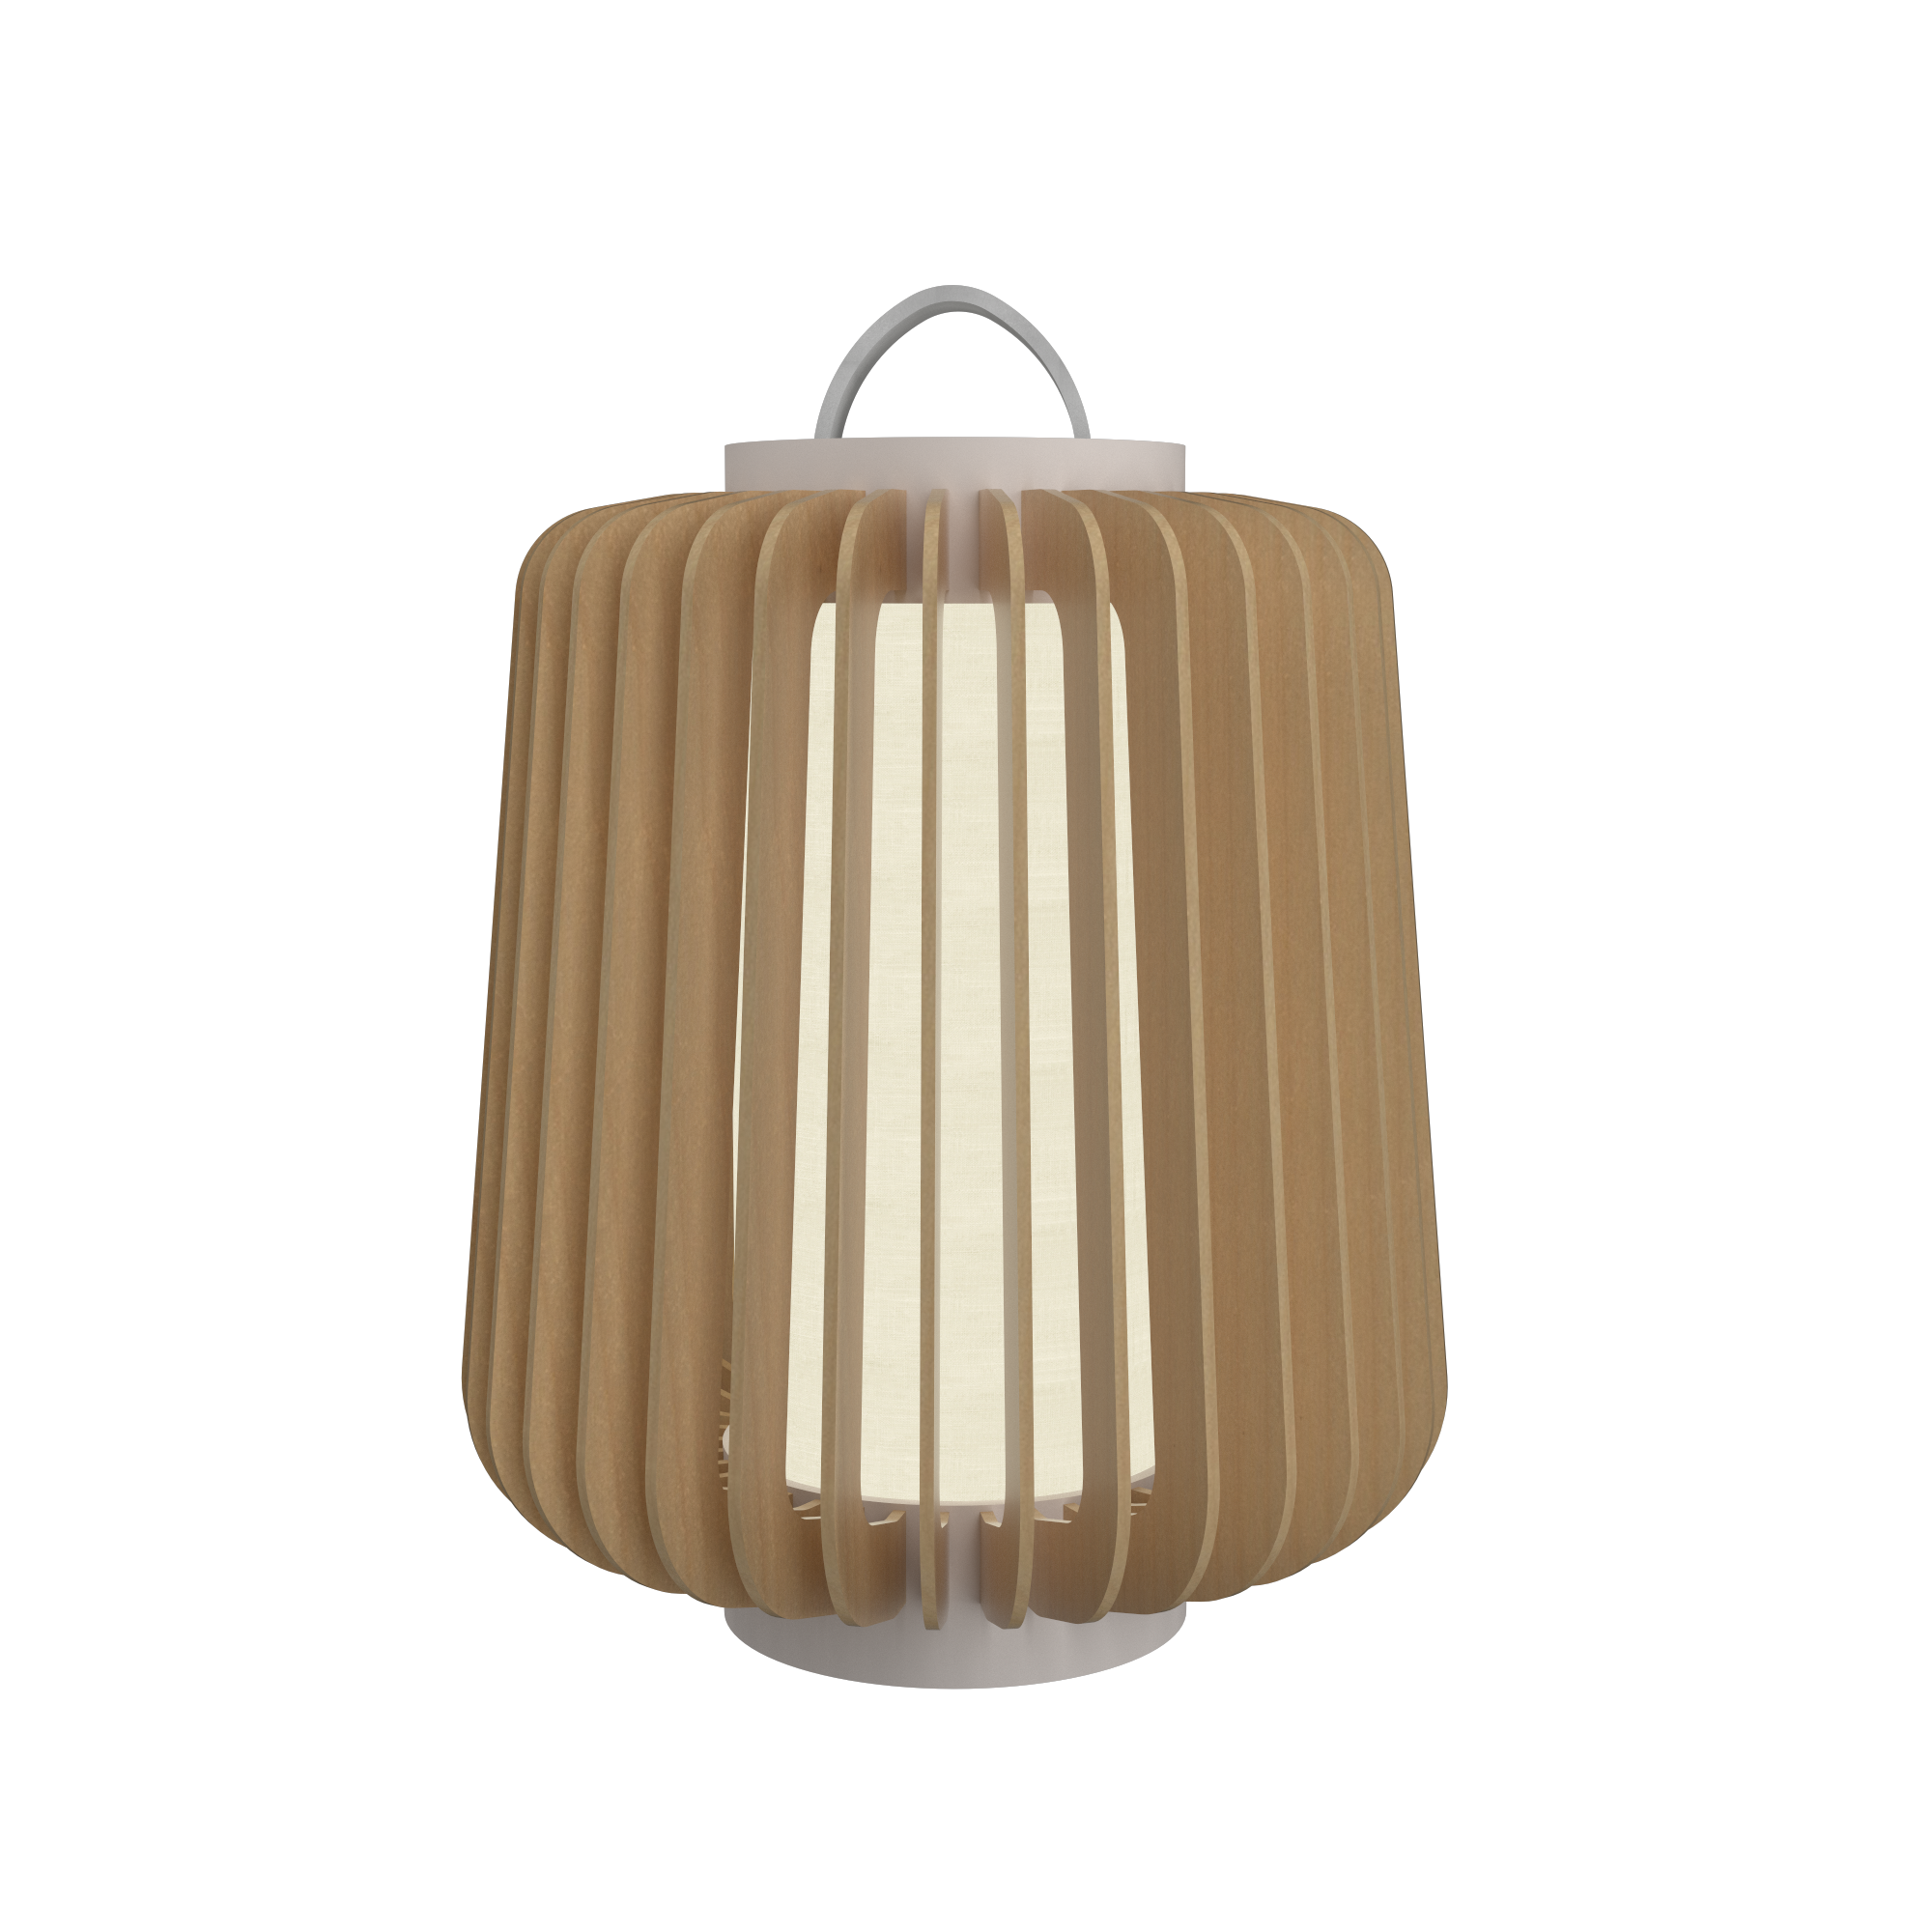 Floor Lamp Accord Stecche Di Legno 3035 - Stecche Di Legno Line Accord Lighting | 34. Maple